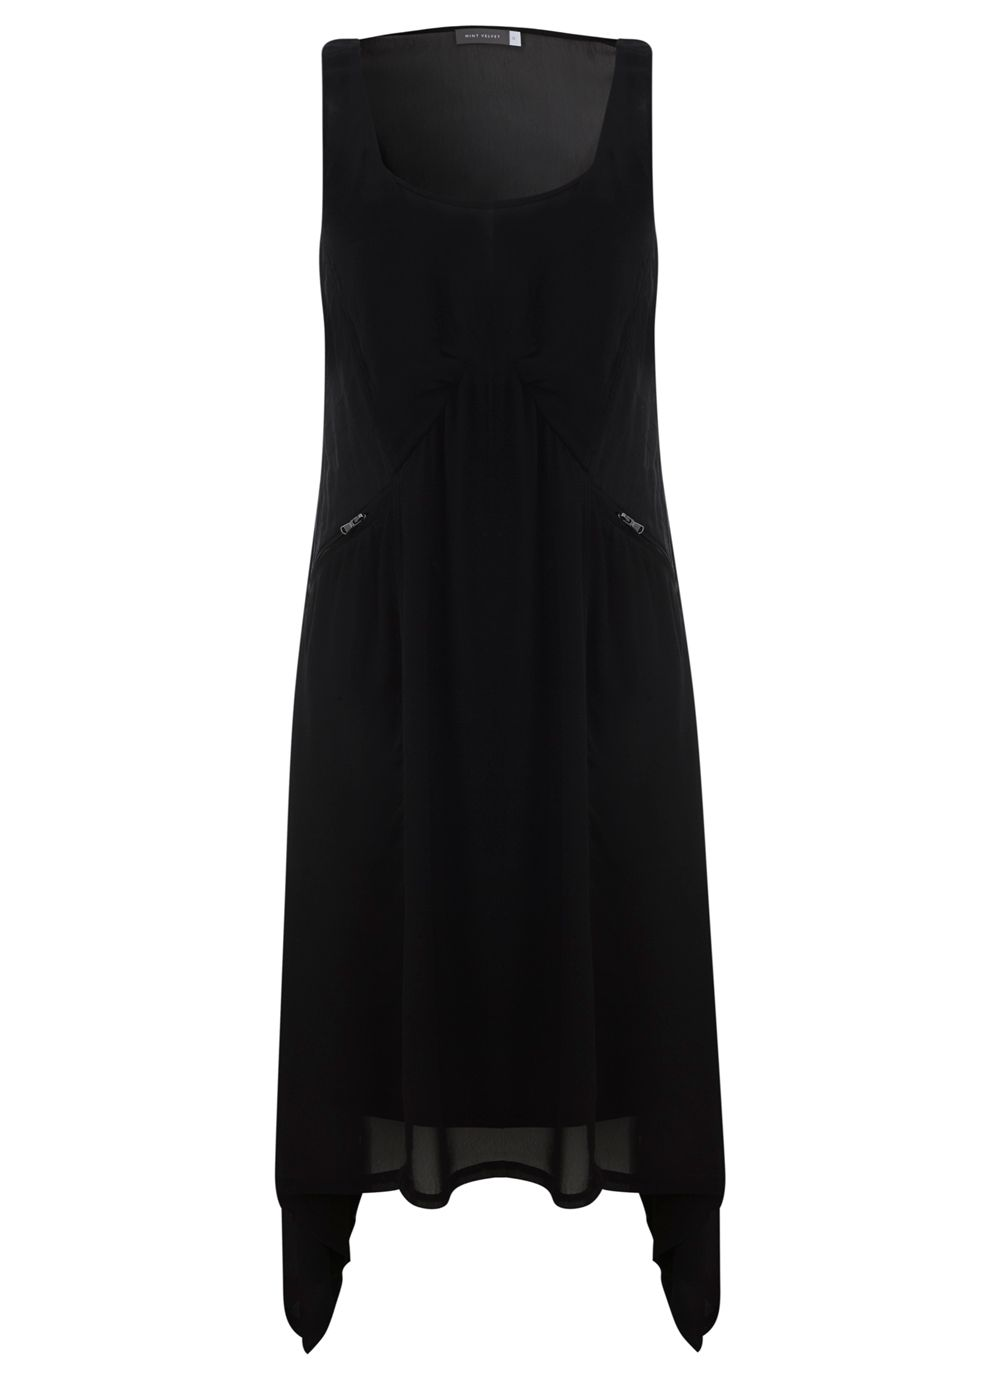 Black Trapeze Dungaree Dress